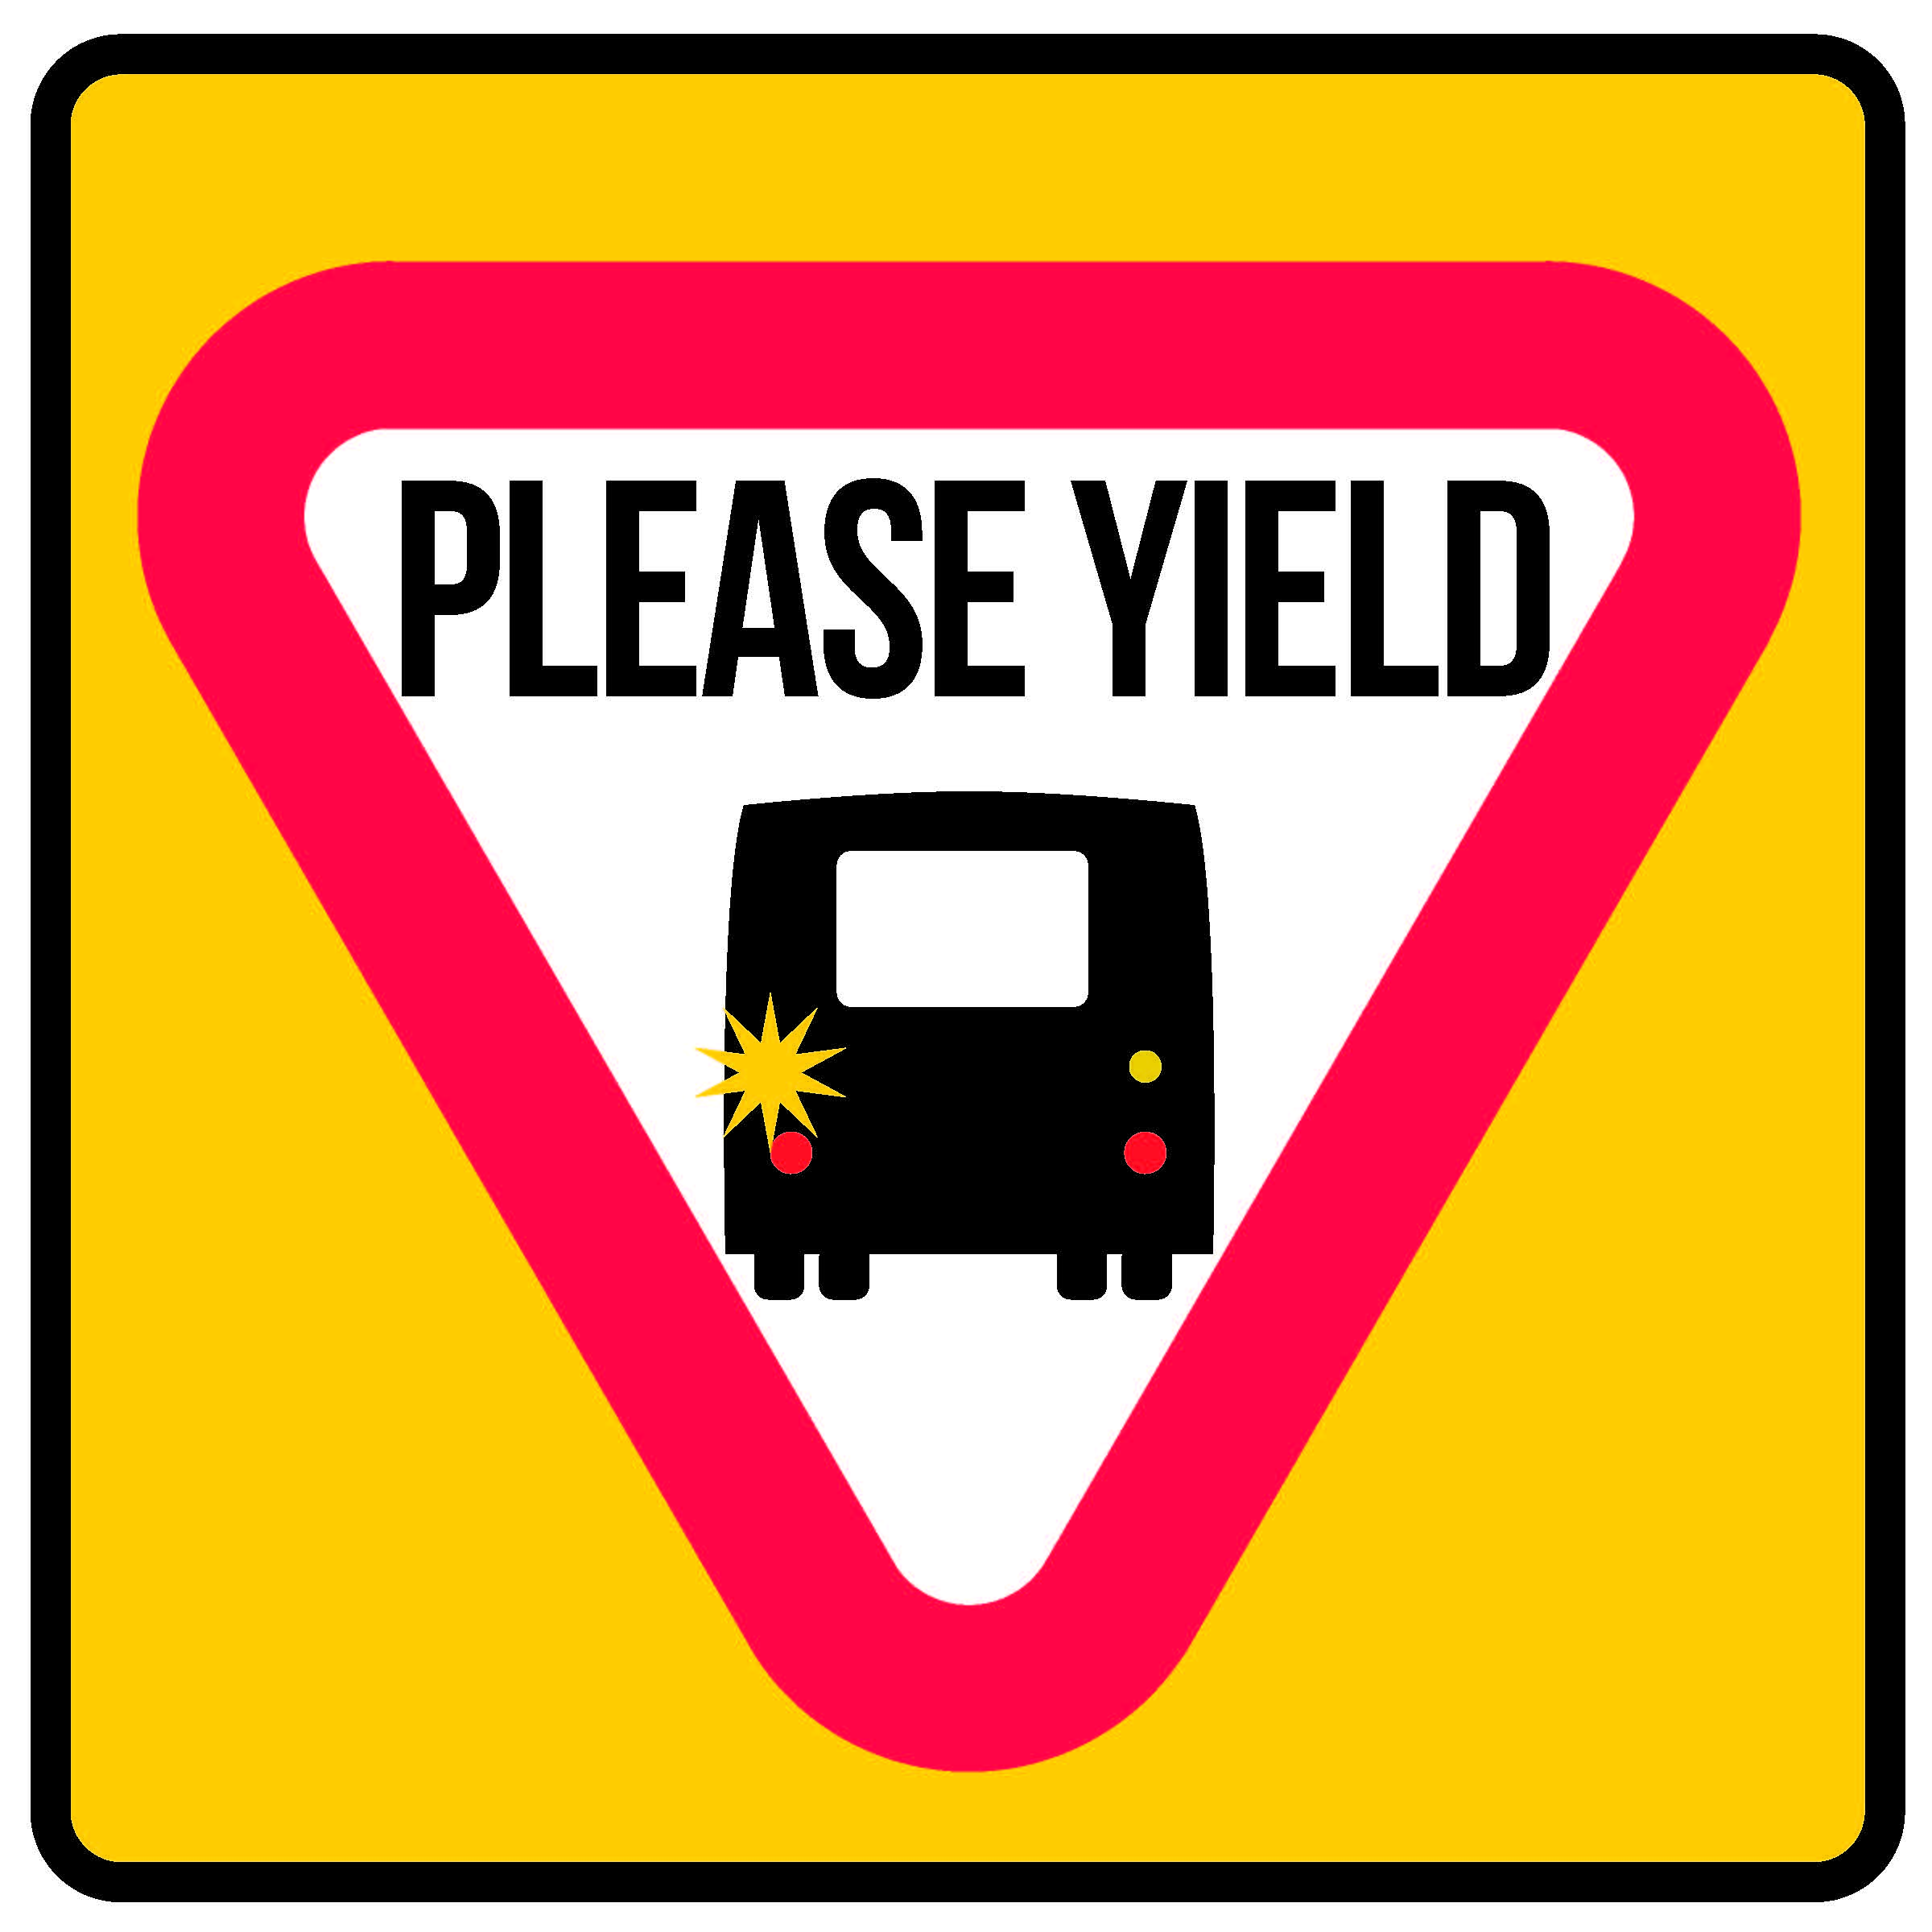 Yiled to bus image